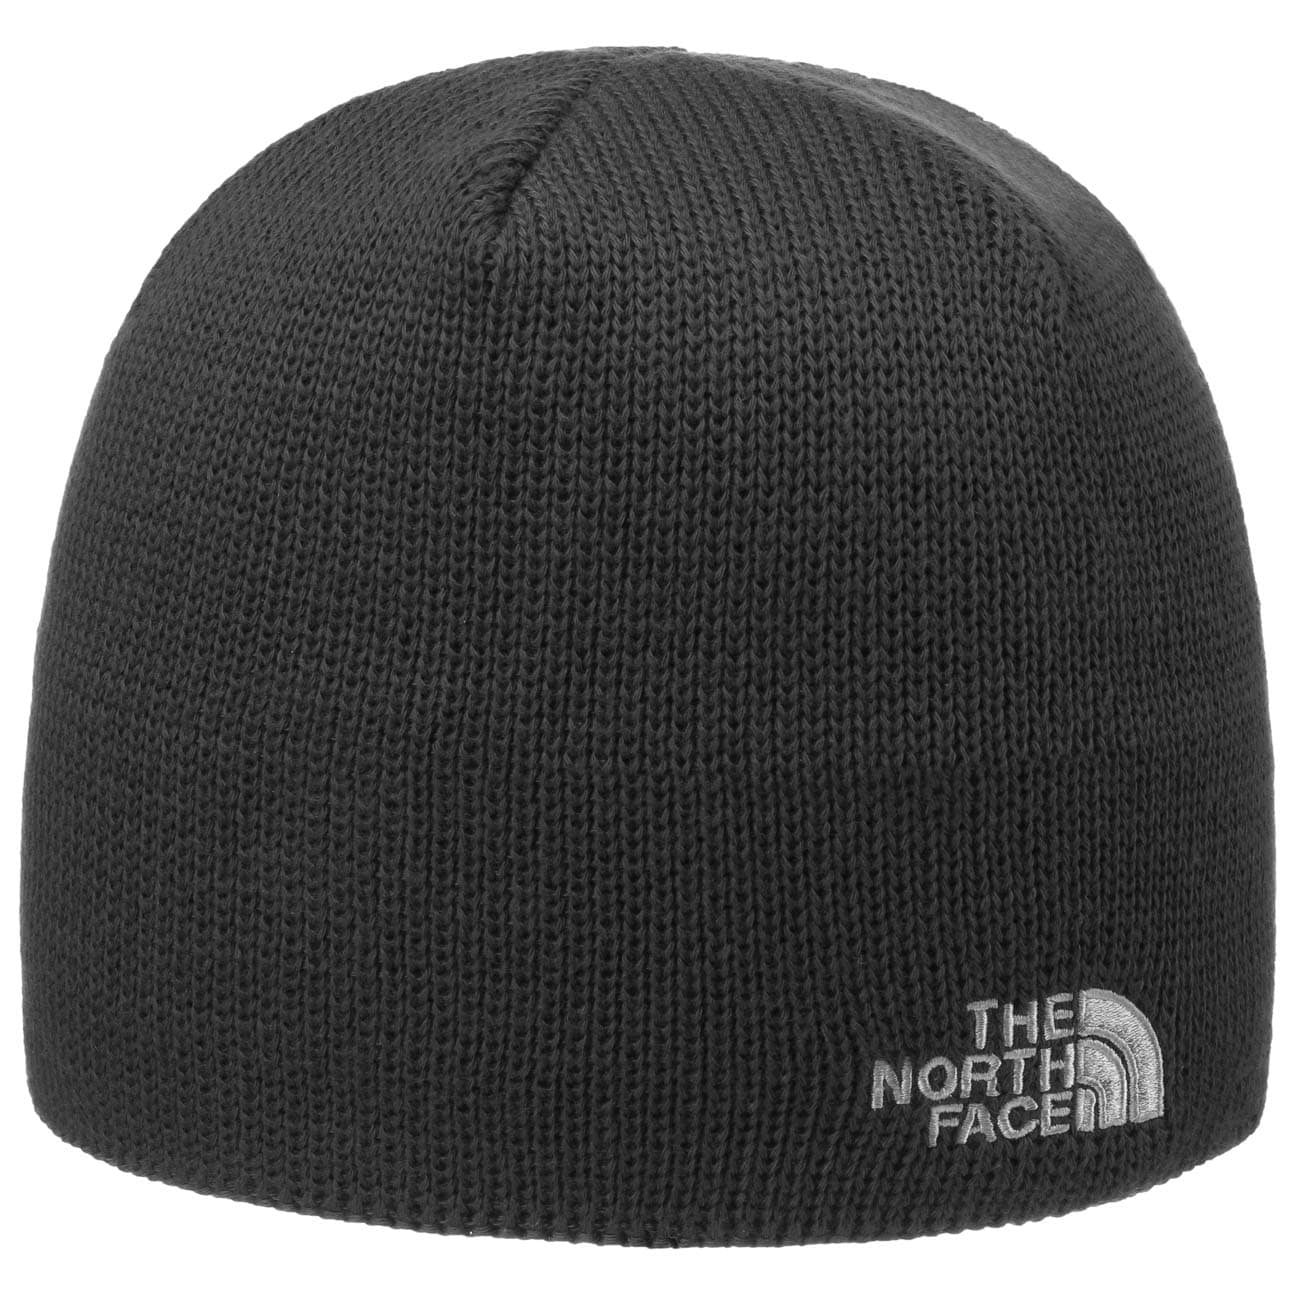 Bonnet Beanie Recycled by The North Face  bonnet